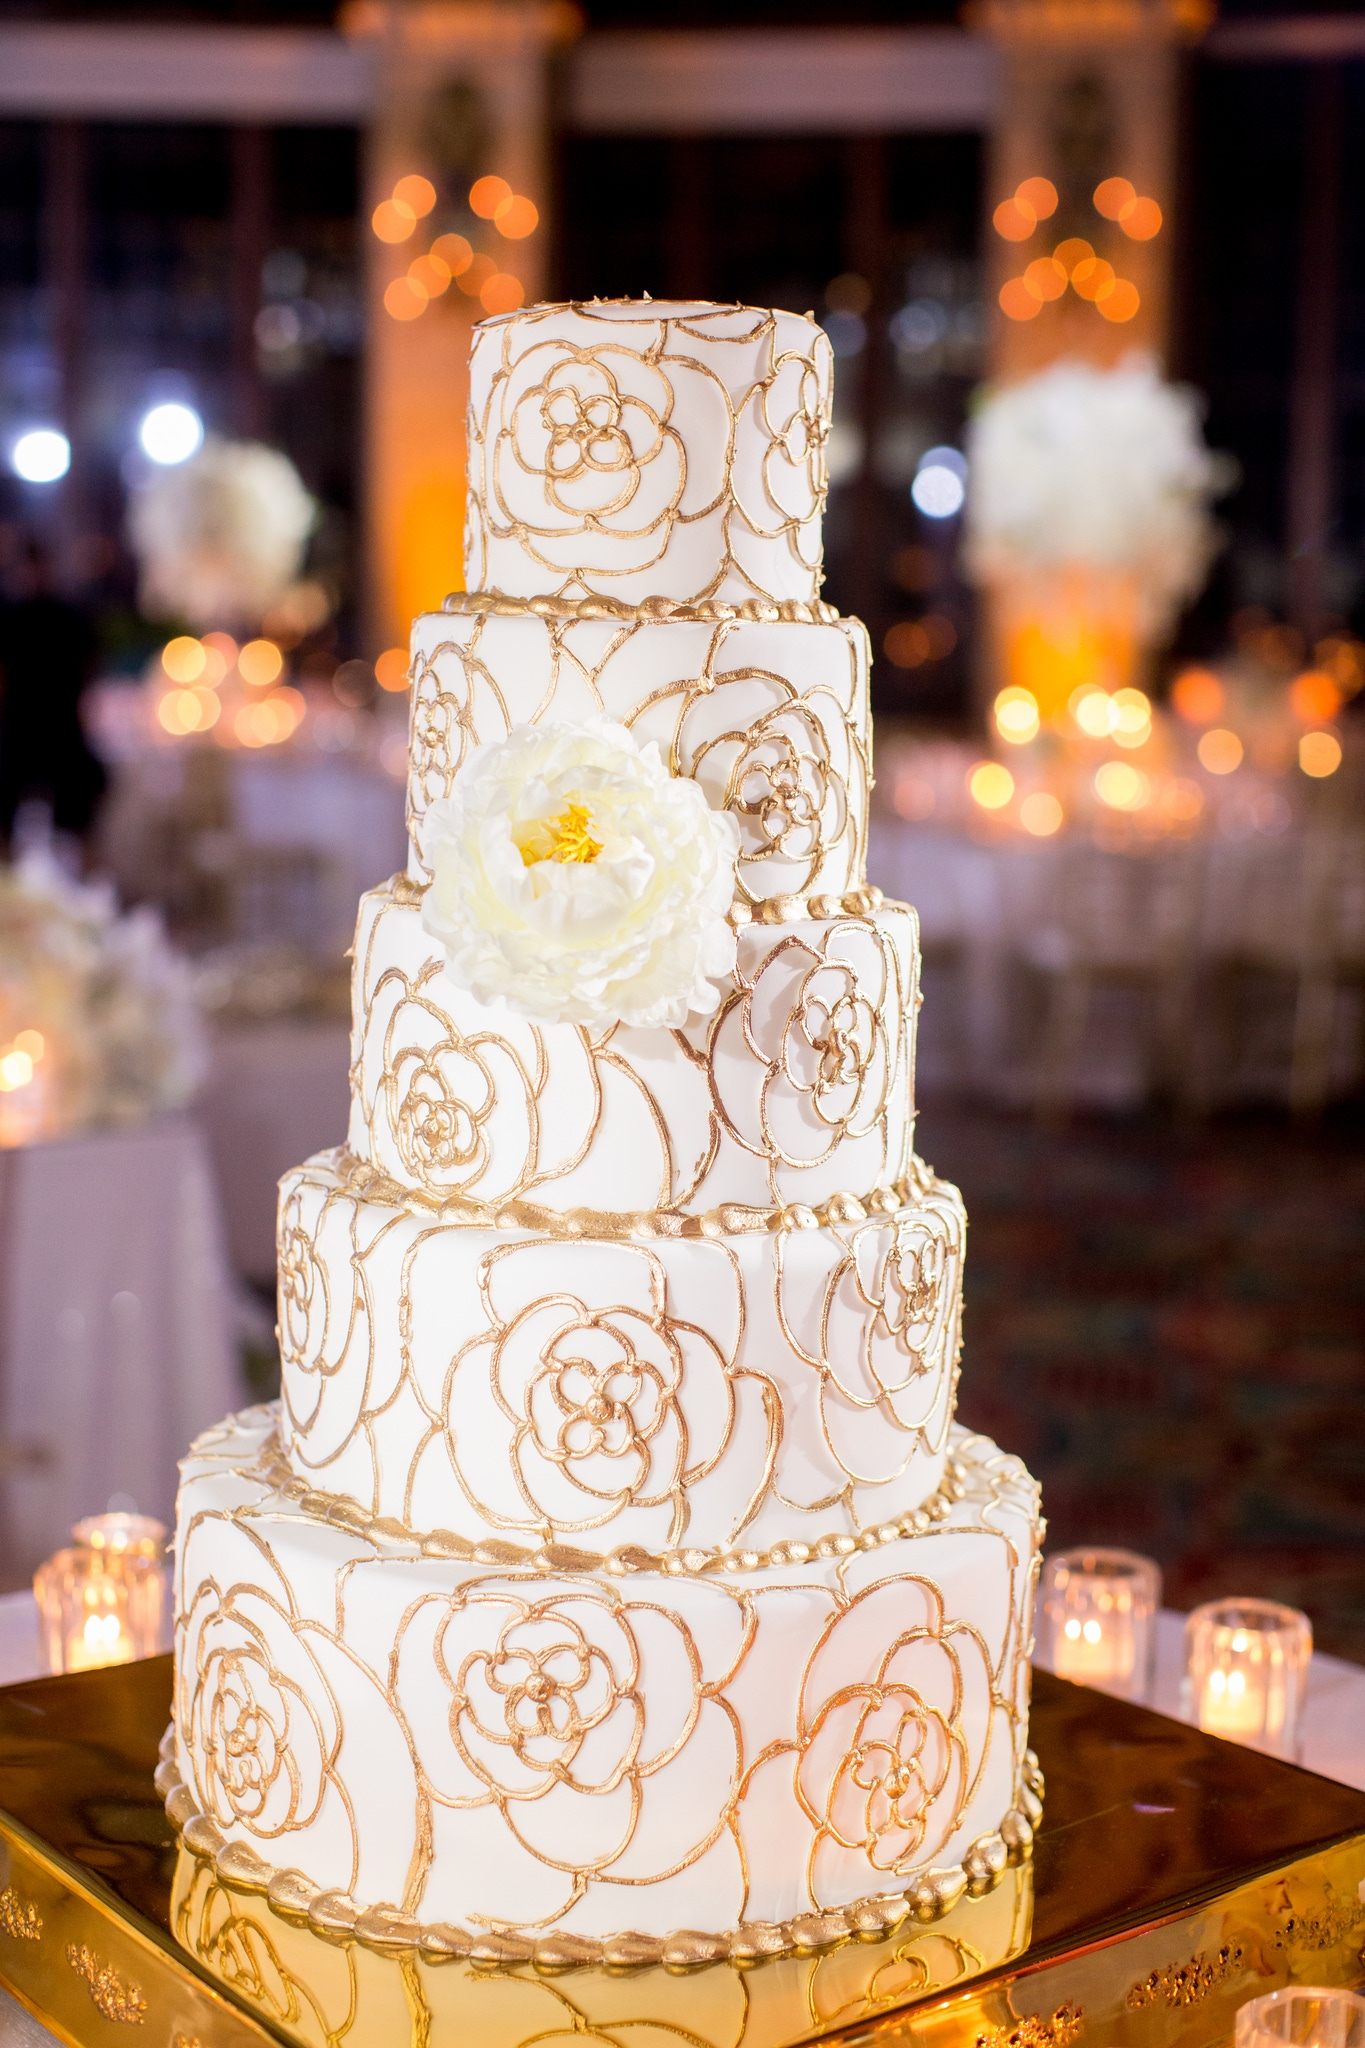 14 Stunning Wedding Cake Ideas You Need For Your Celebration Partyslate